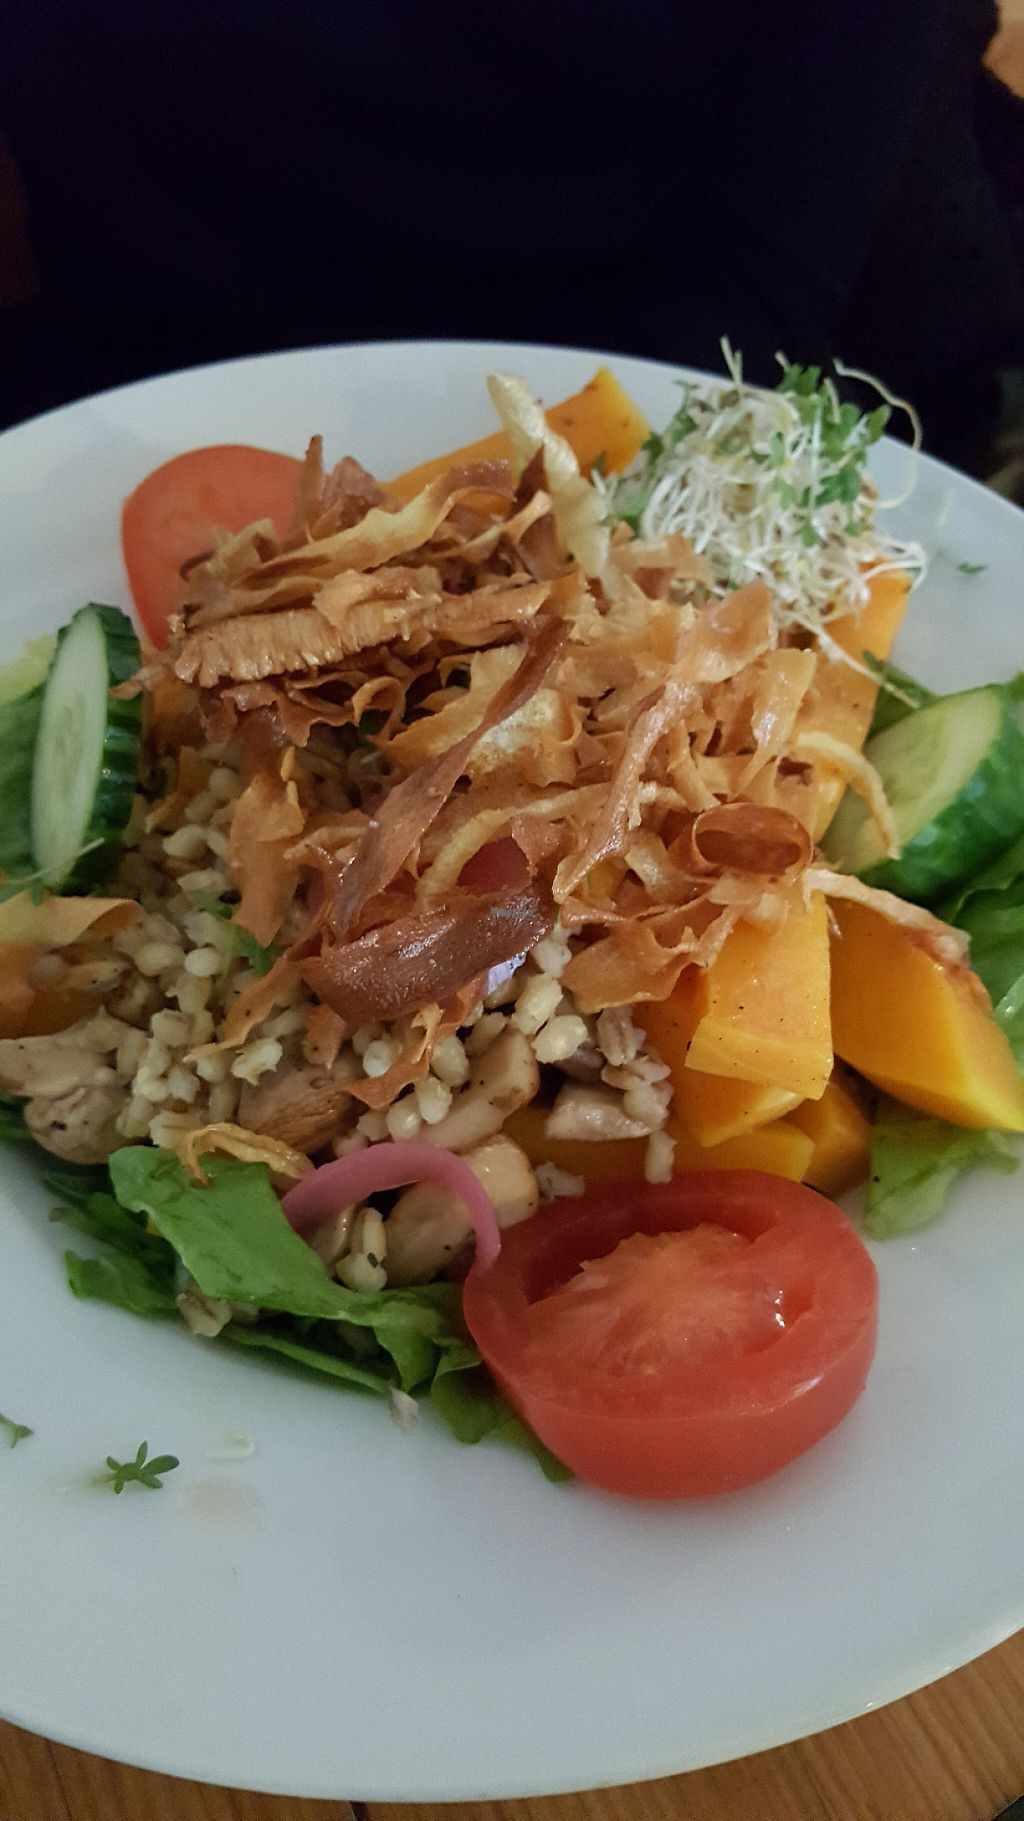 """Photo of GYS  by <a href=""""/members/profile/AlanDrummer"""">AlanDrummer</a> <br/>Roasted pumpkin, parsnip chips, barley and green leafy salad... very filling and tasty ... and vegan <br/> April 9, 2017  - <a href='/contact/abuse/image/53767/246313'>Report</a>"""